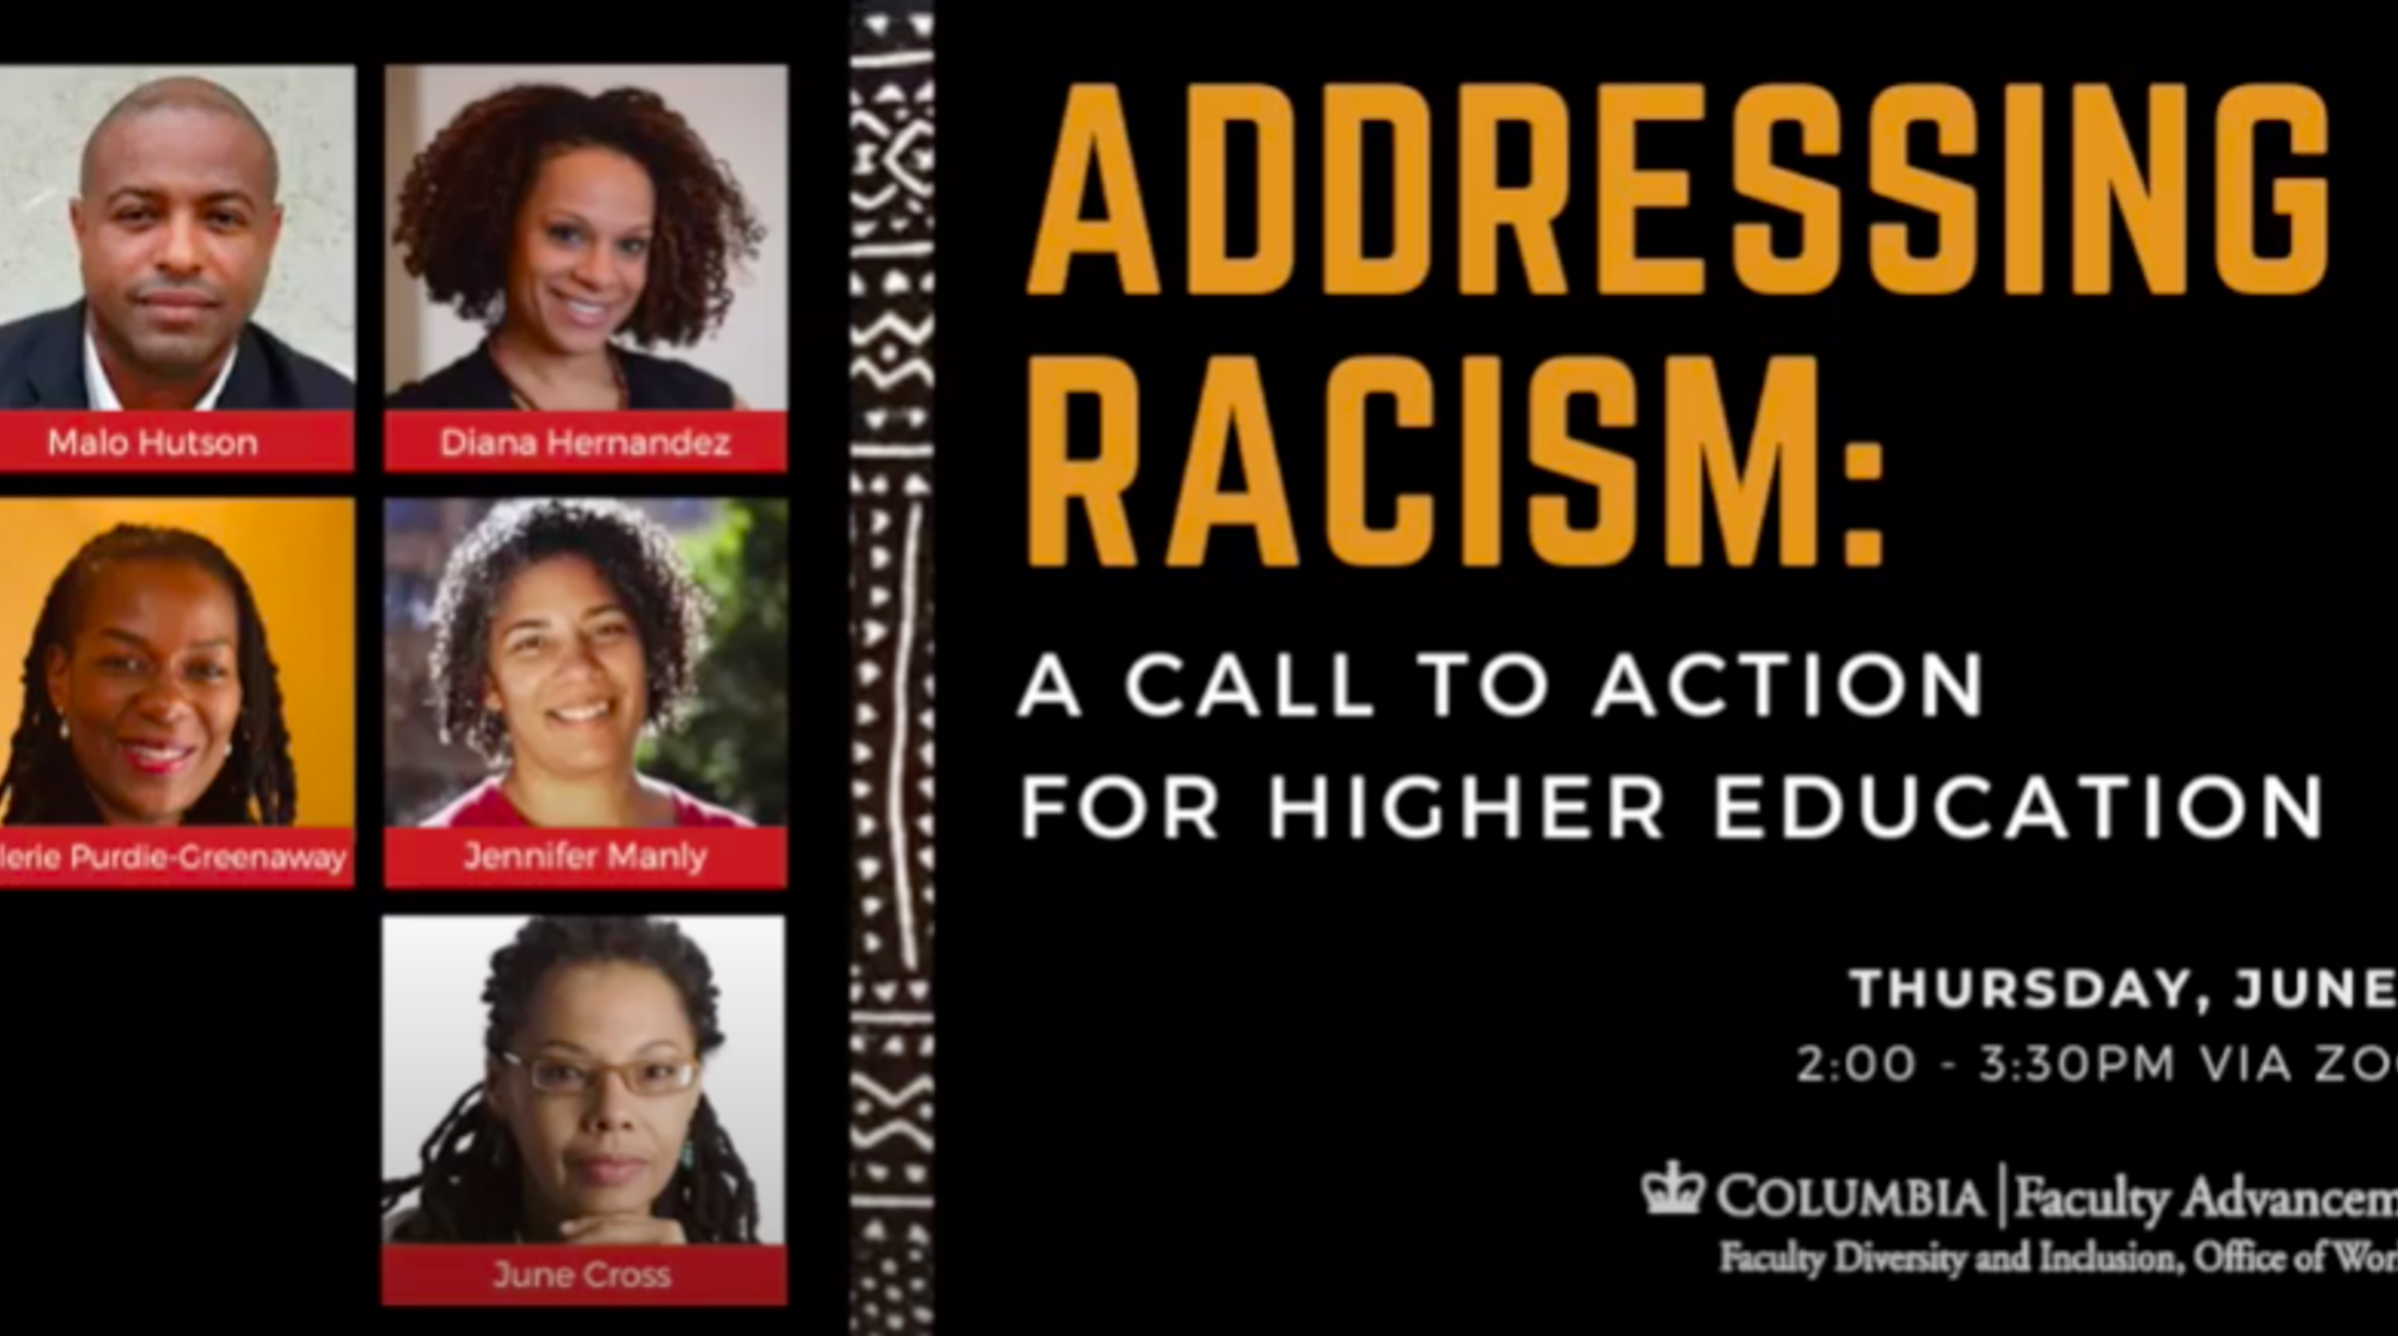 Addressing Racism: A Call to Action for Higher Education